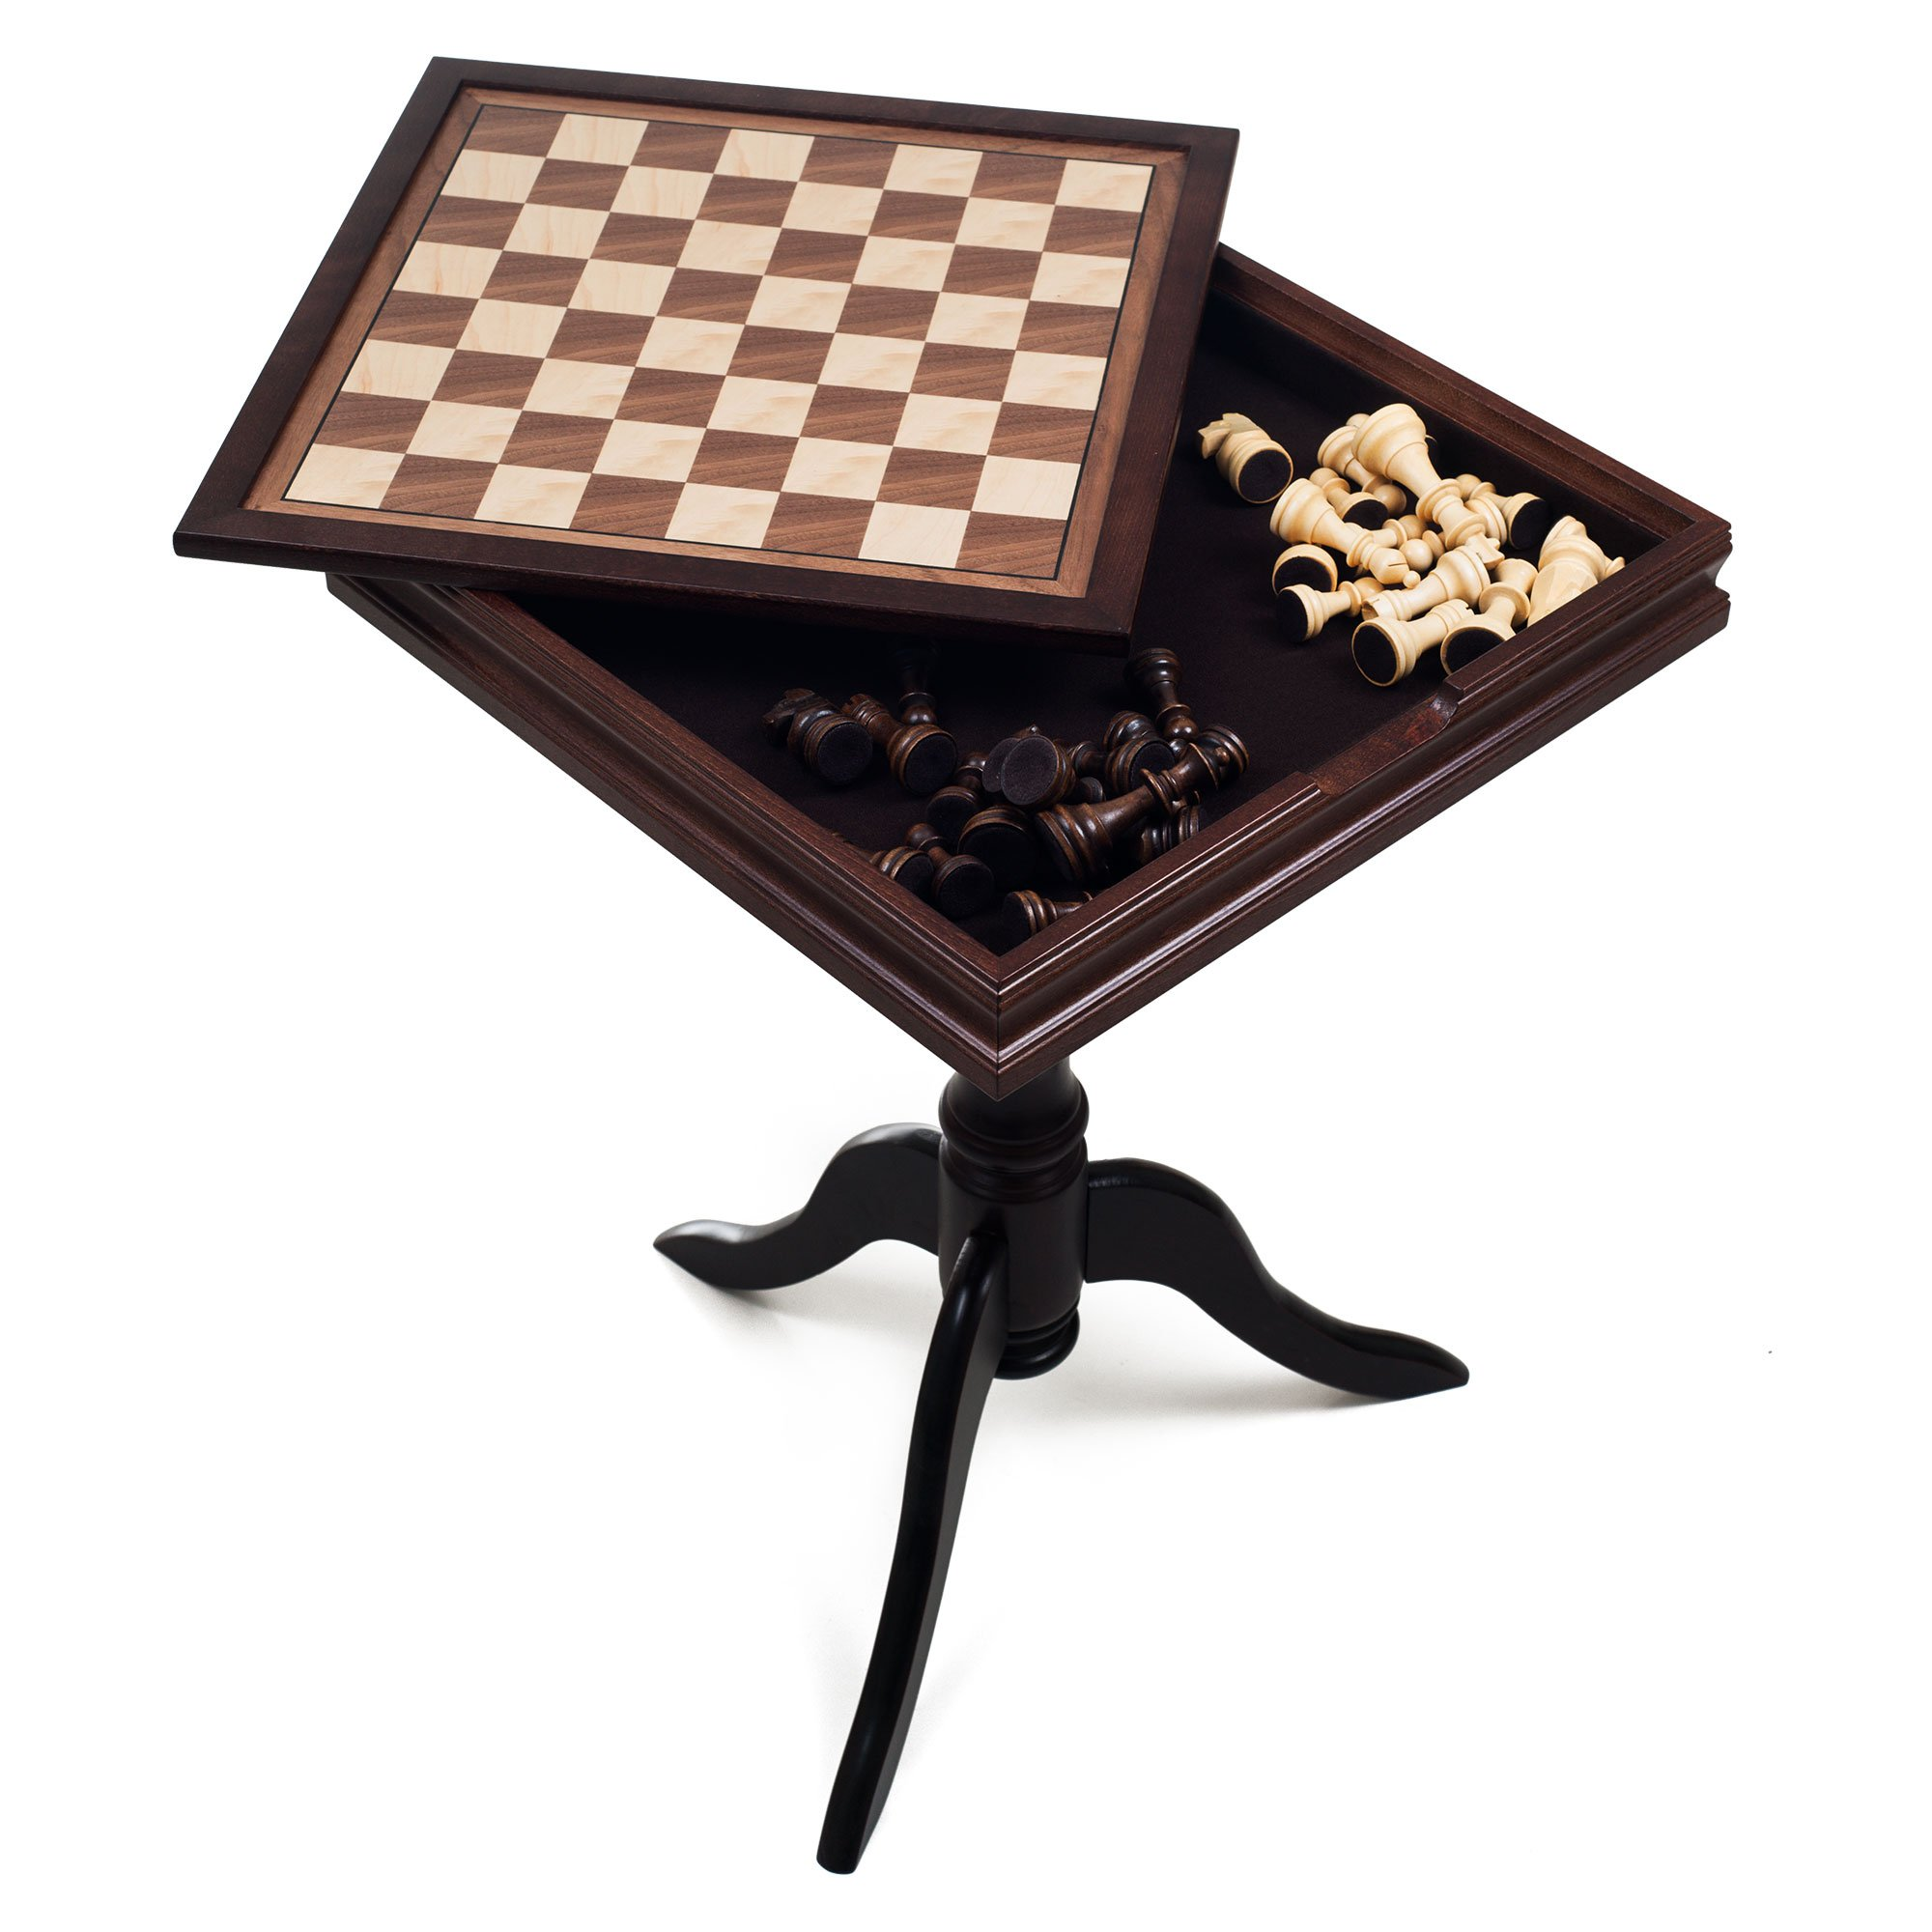 Deluxe Chess and Backgammon Table by Trademark Games